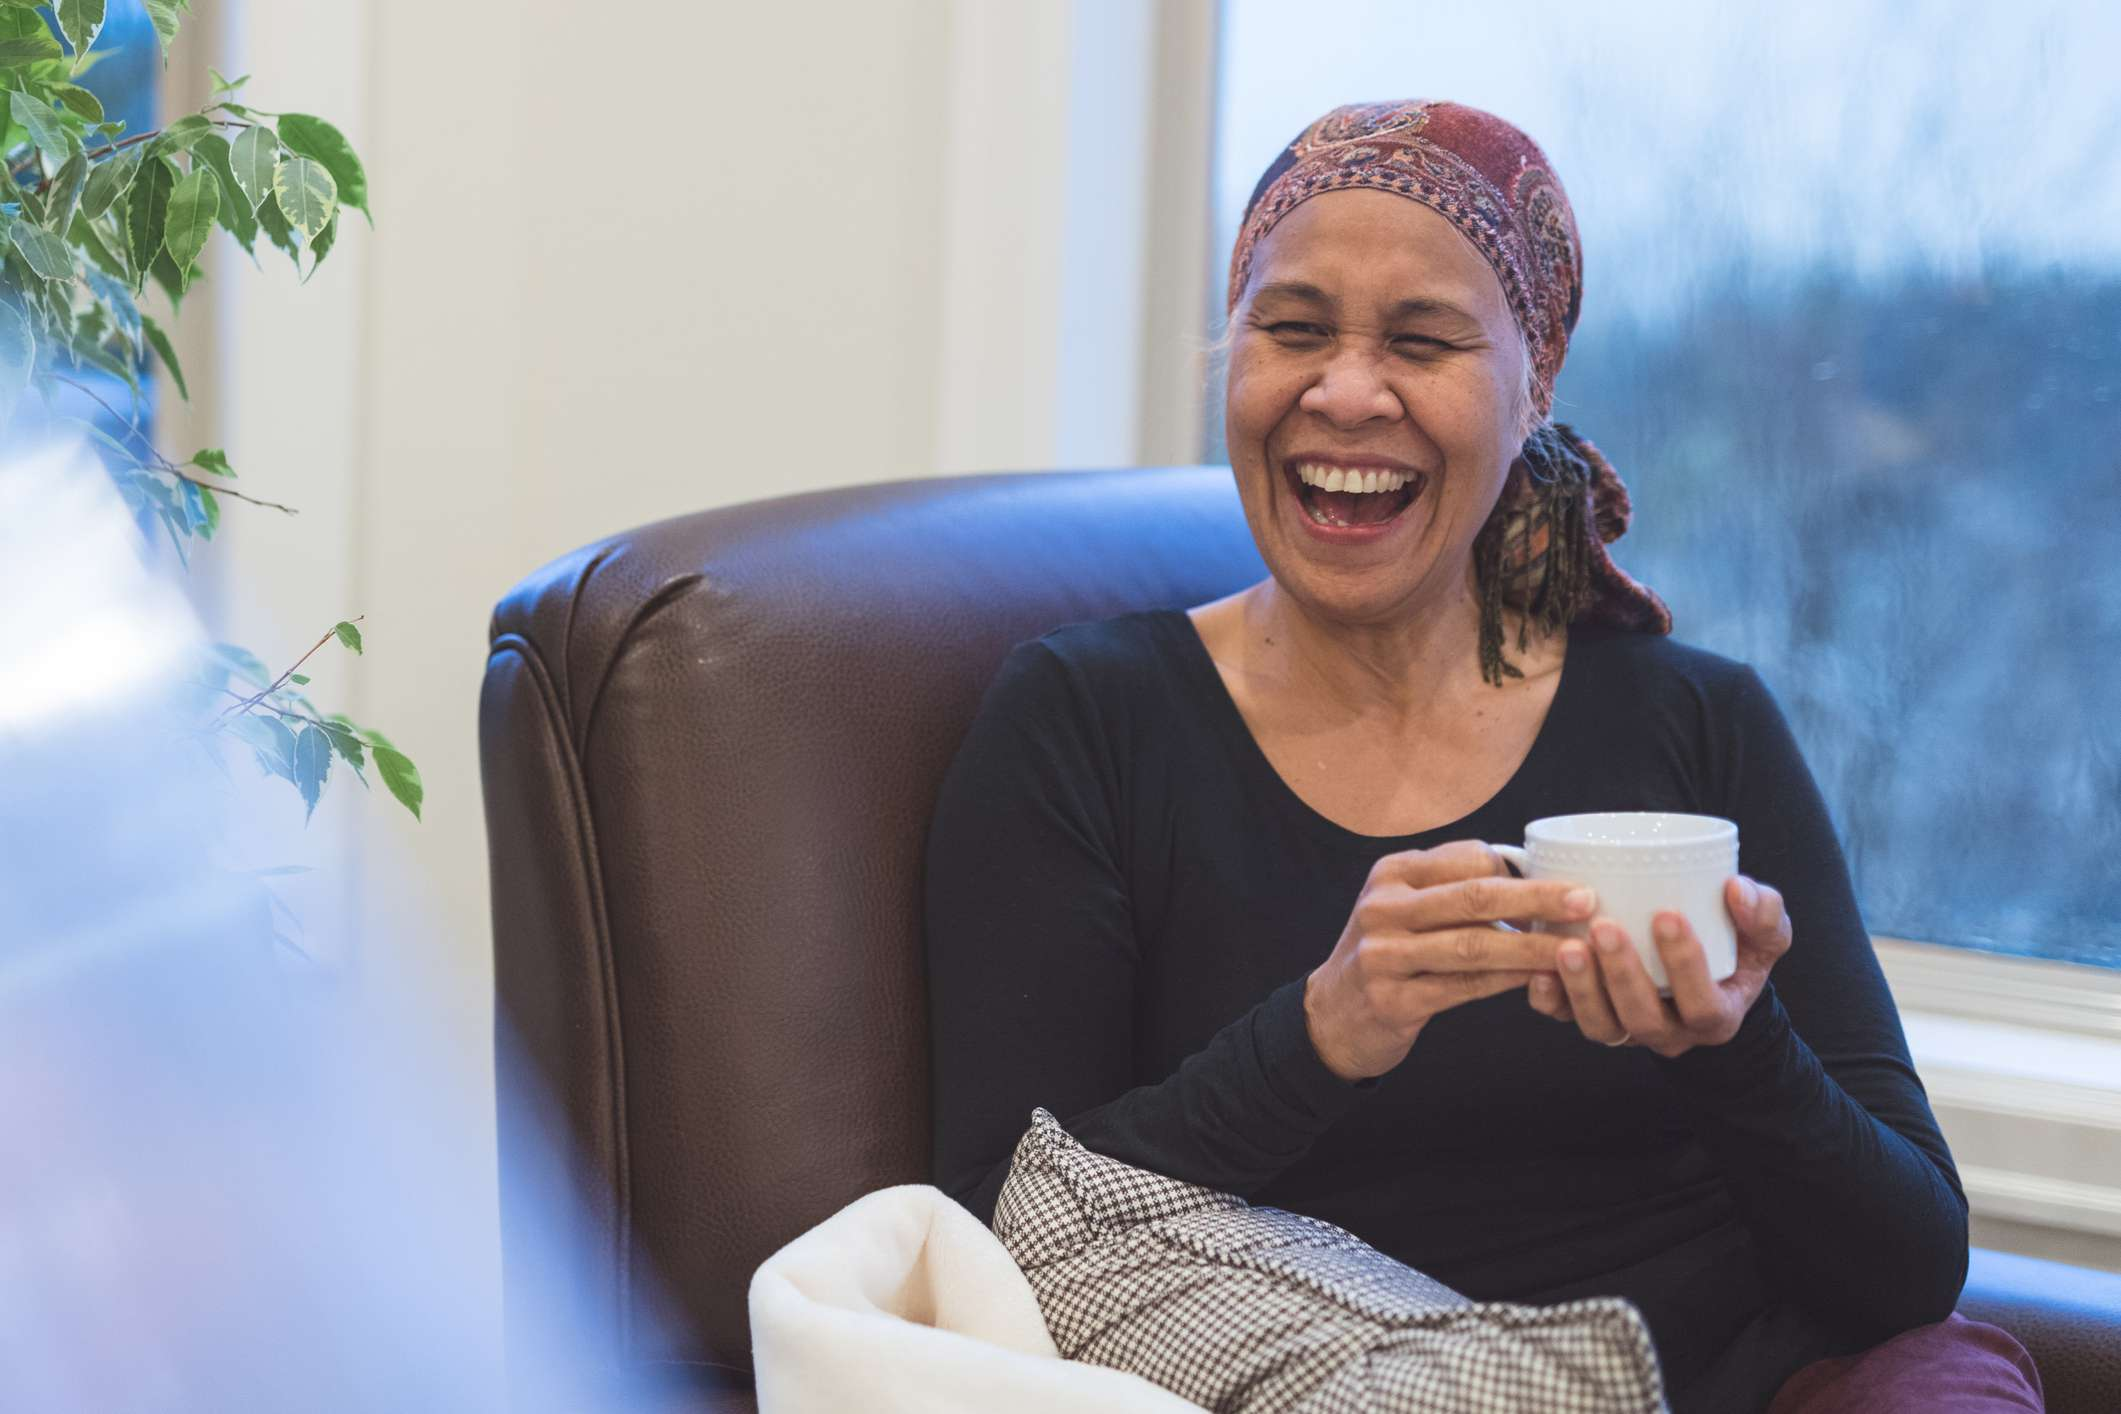 A women laughing although she has cancer